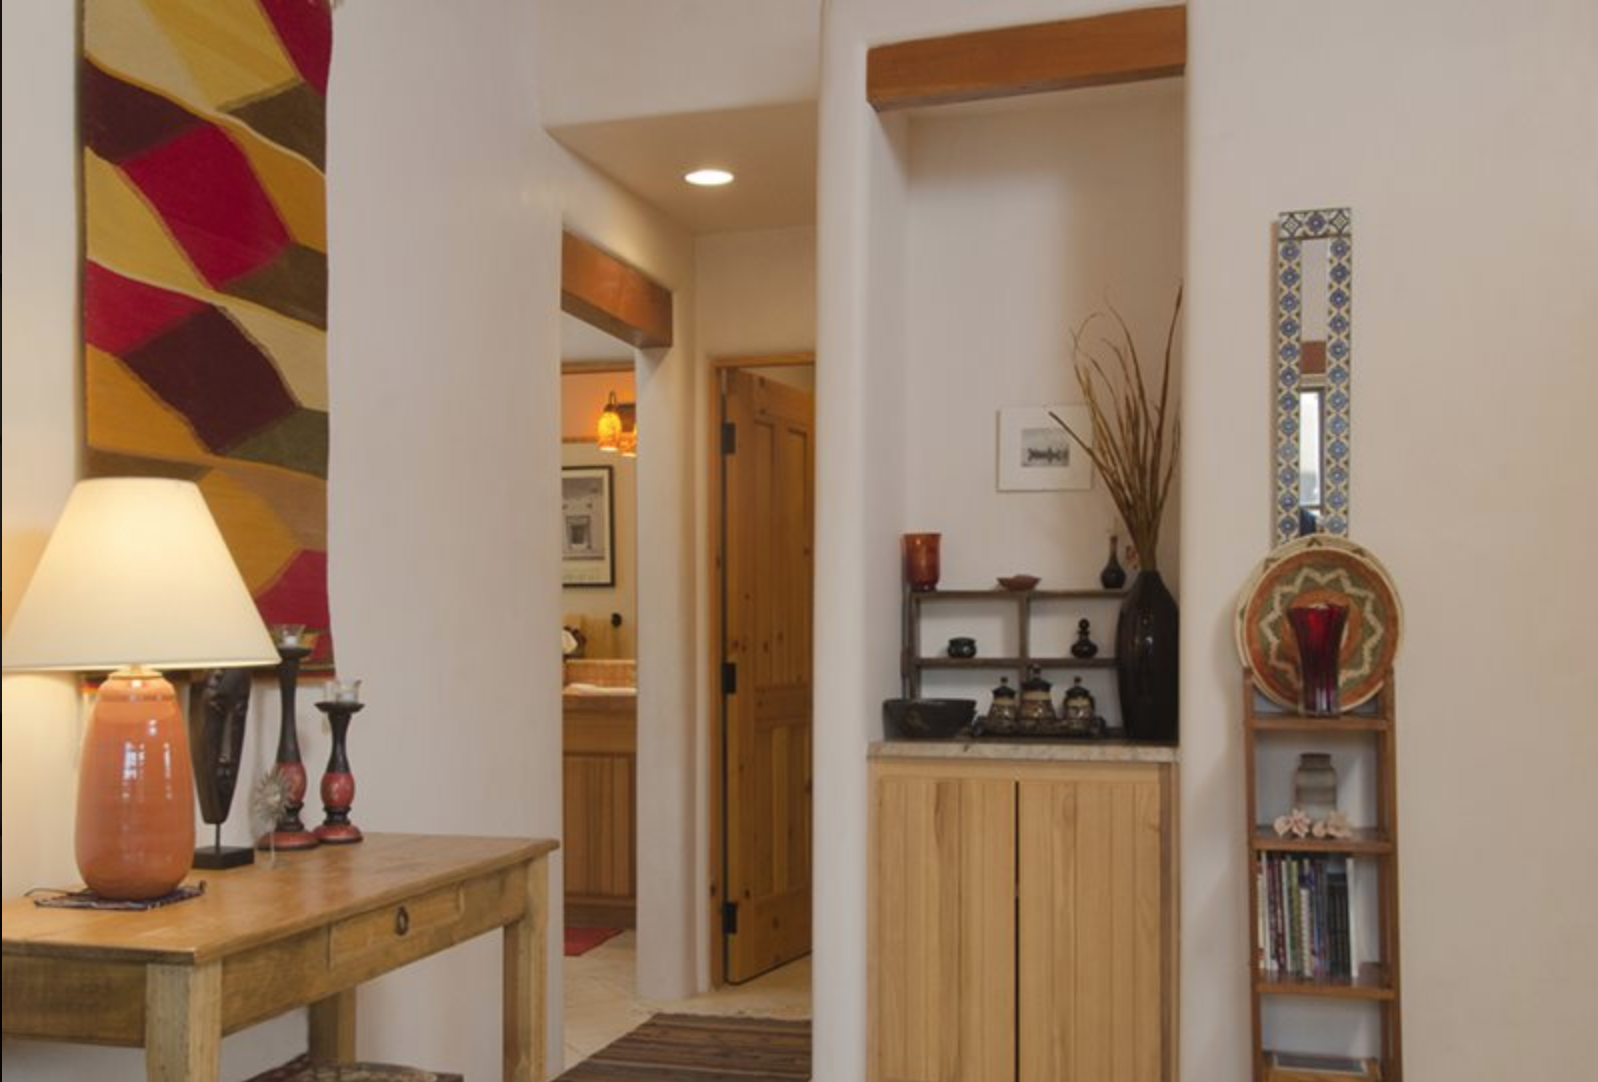 Vacation Rental in Santa Fe NM | Adobe Destinations